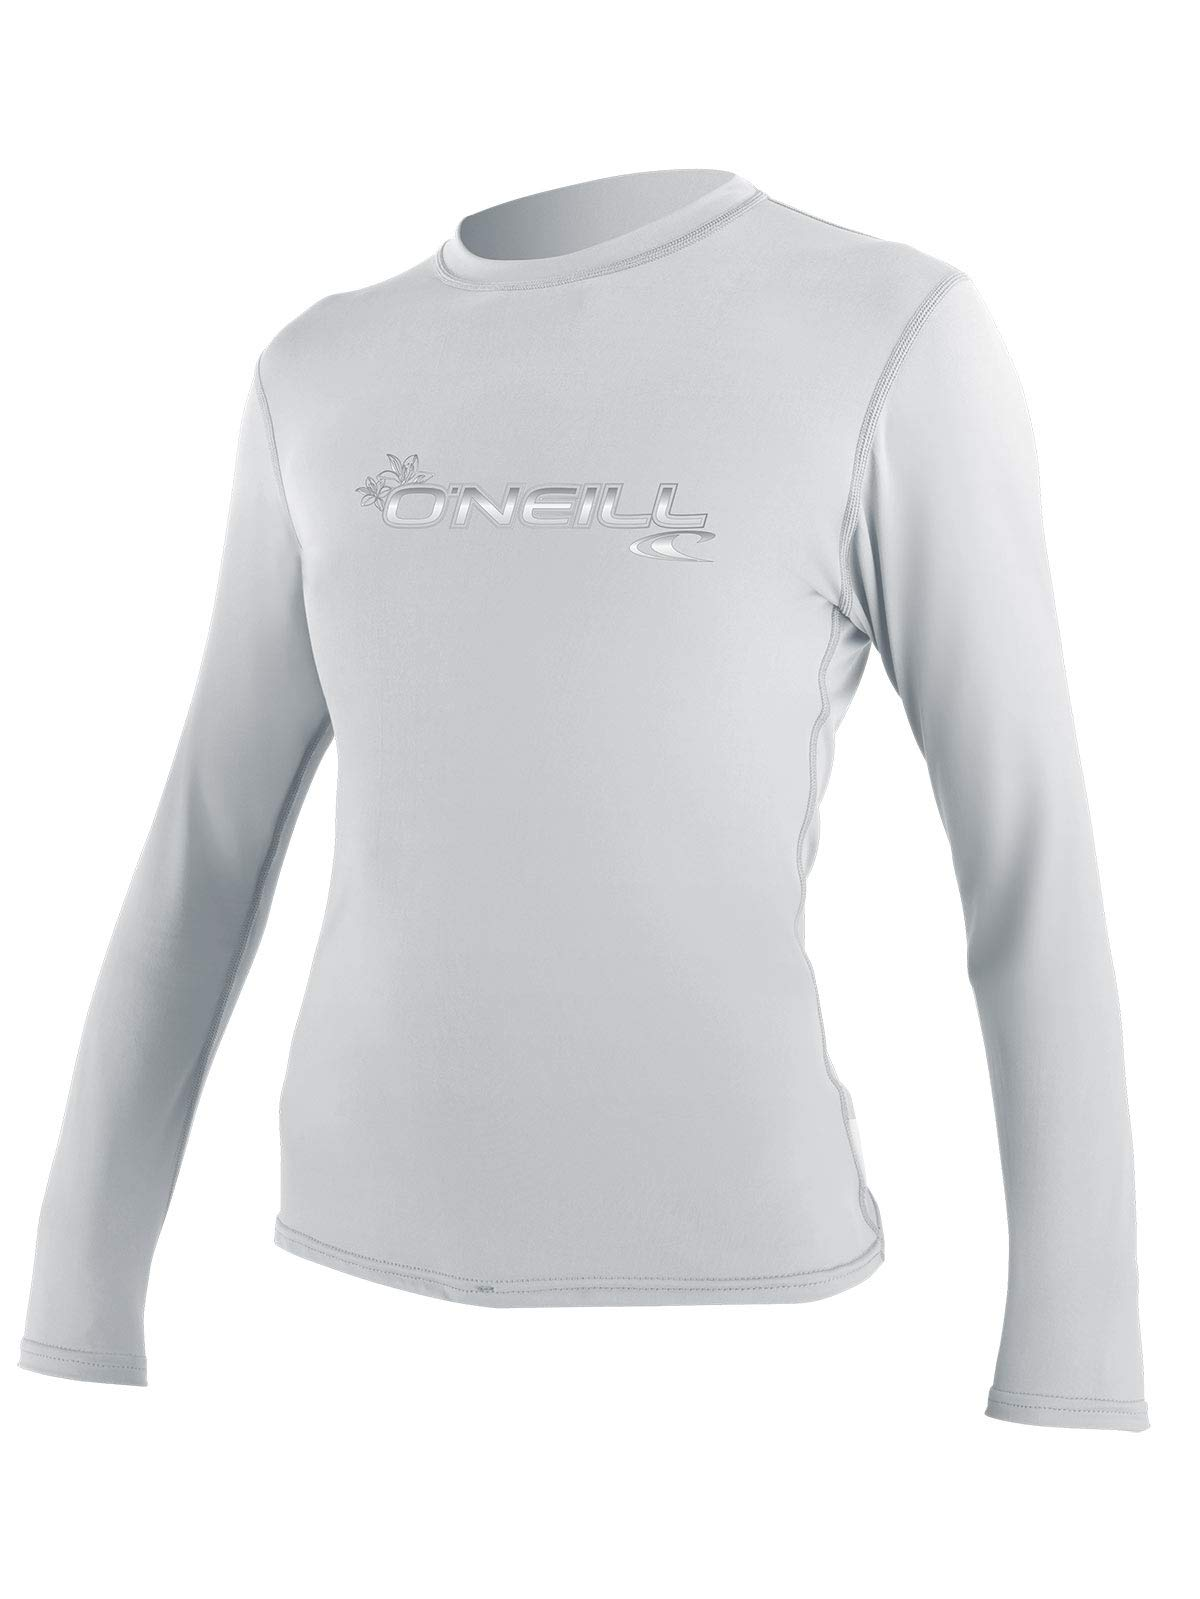 O'Neill Women's Basic Skins Long Sleeve Sun Shirt (White (4340IS), XX-Large) by O'Neill Wetsuits